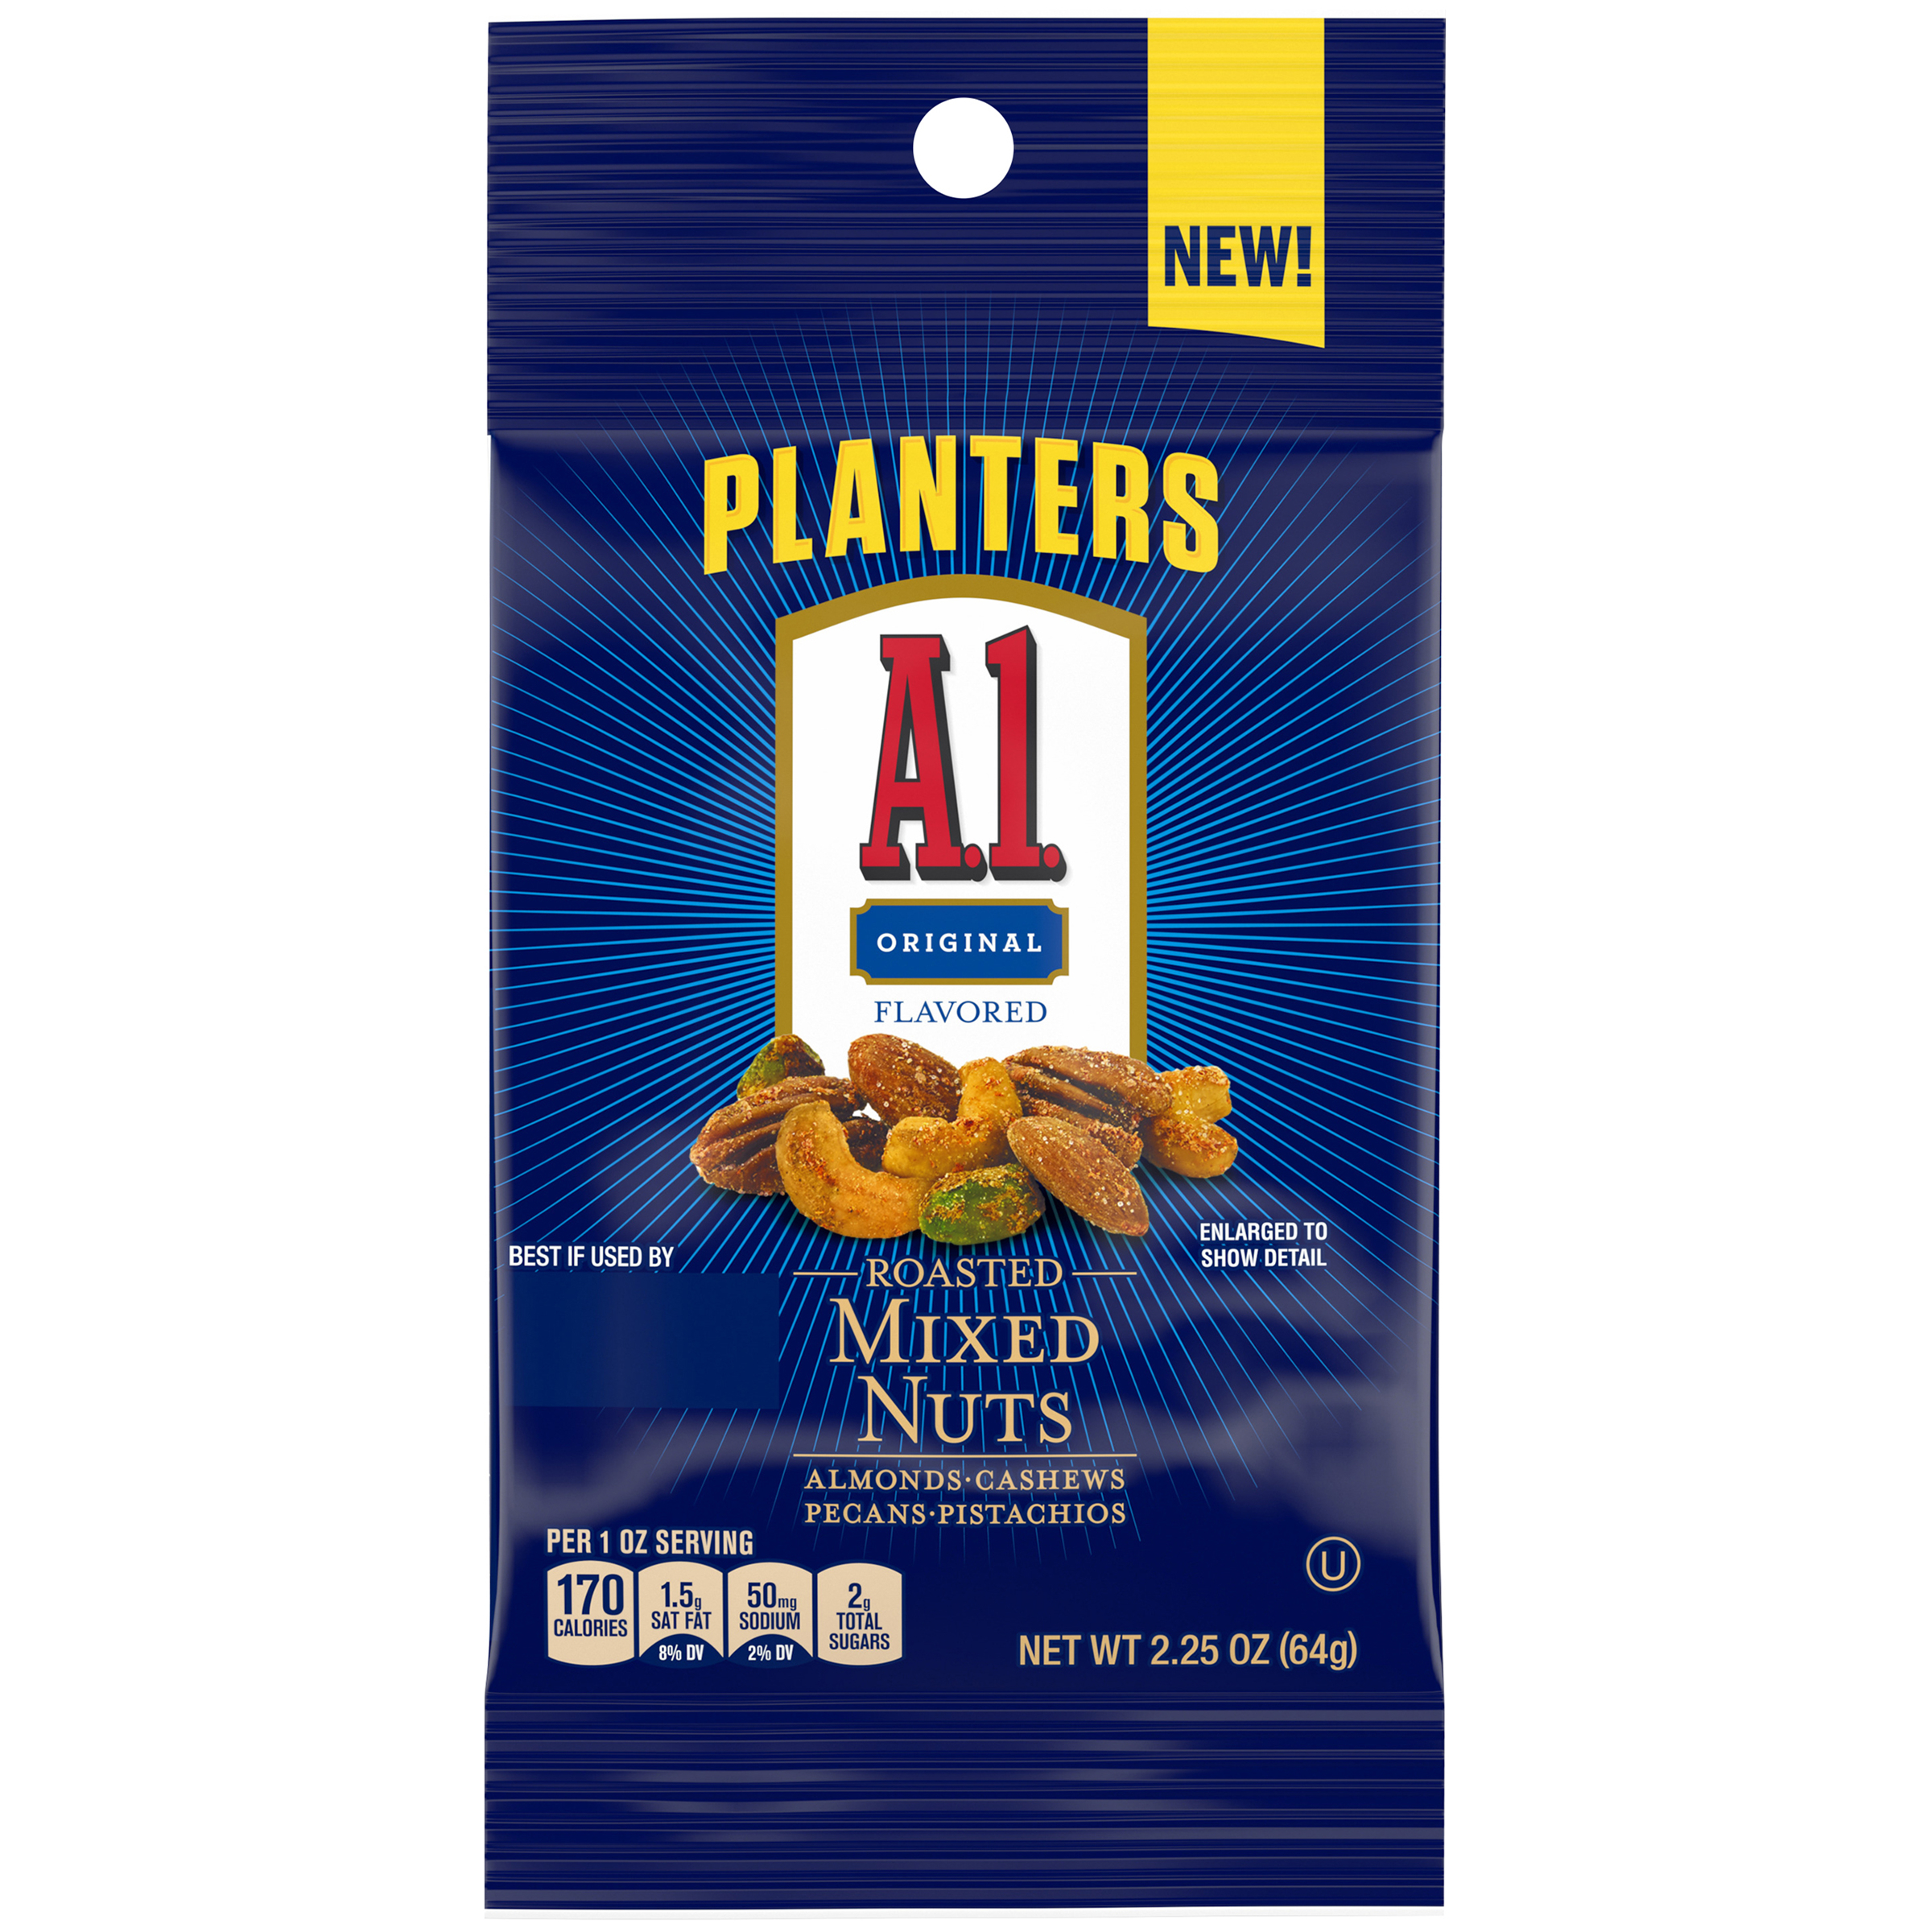 PLANTERS® A1 Deluxe Mixed Nuts 2.25 oz packet